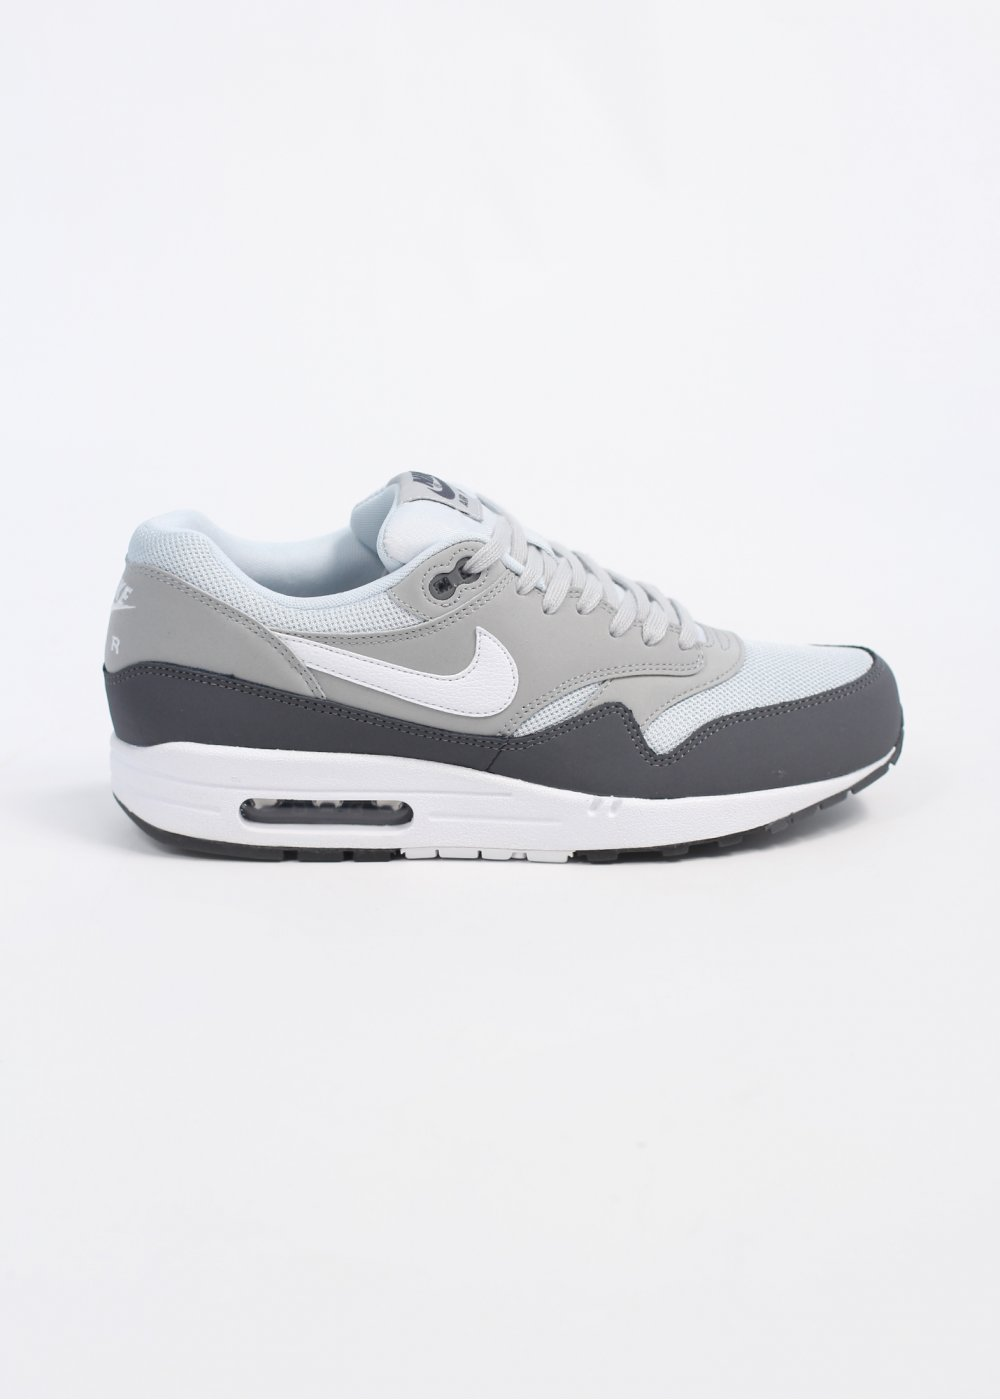 5cafaf98e20a Air Max 1 Essential Trainers - Dark Grey